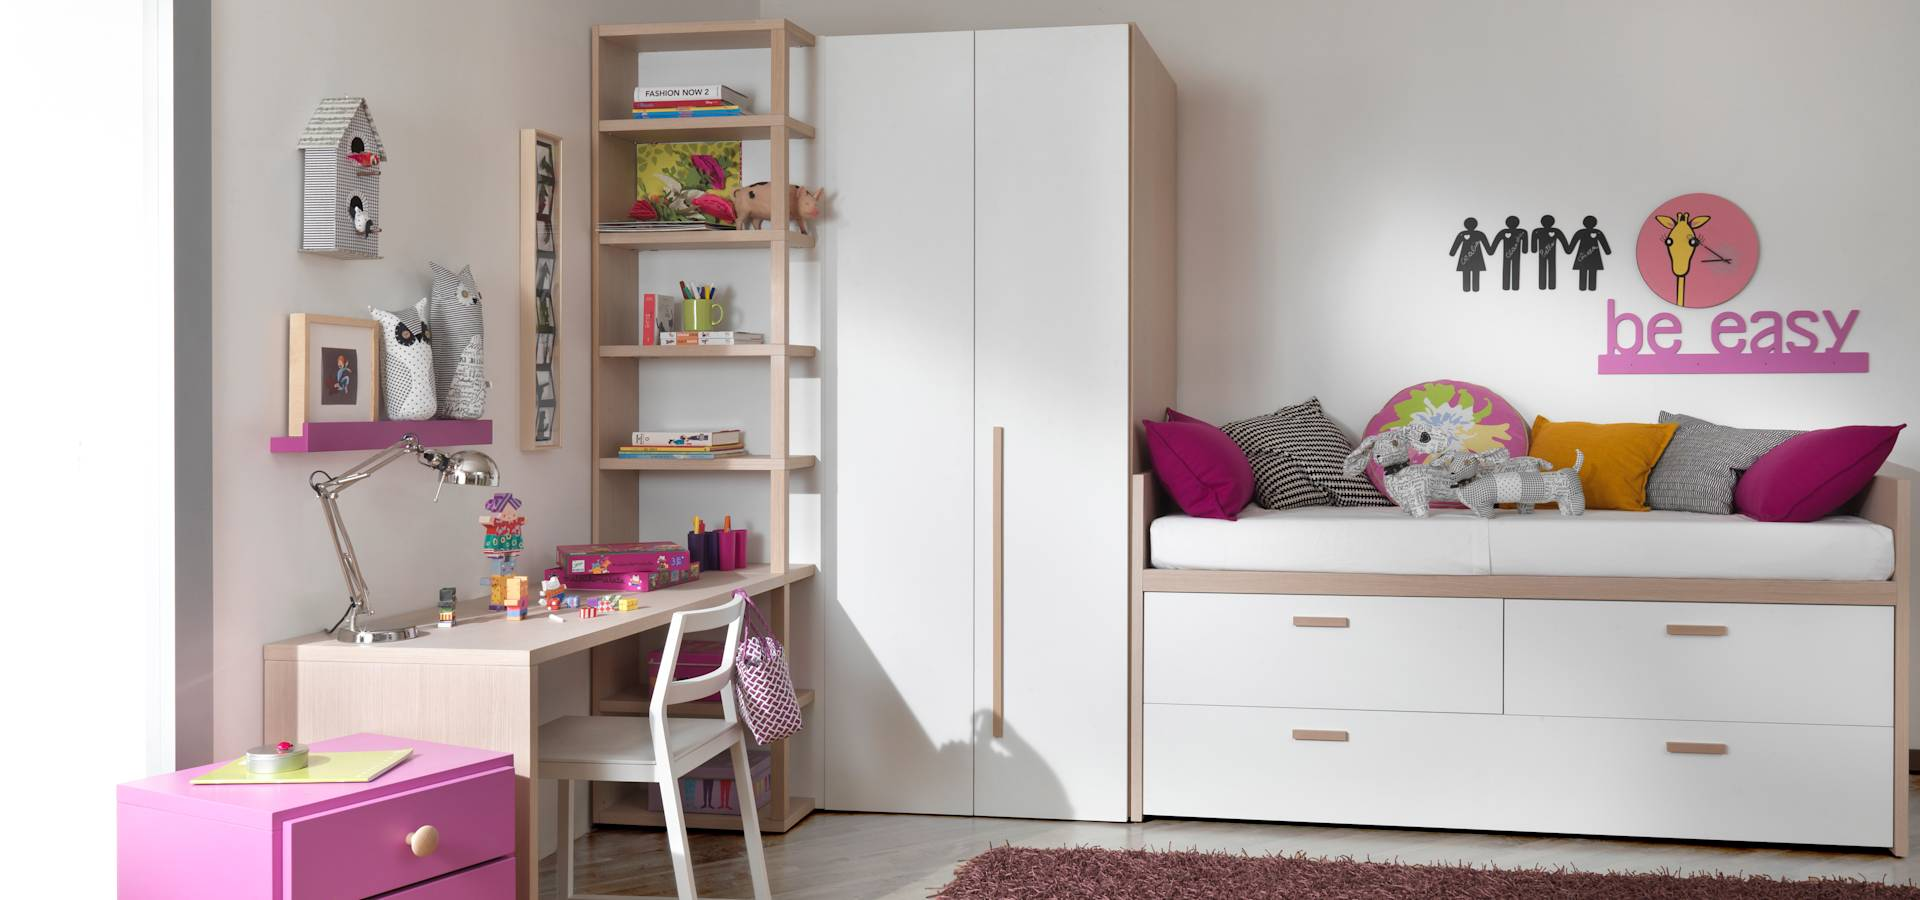 aussergew hnliche hochbetten von mobimio r ume f r kinder homify. Black Bedroom Furniture Sets. Home Design Ideas